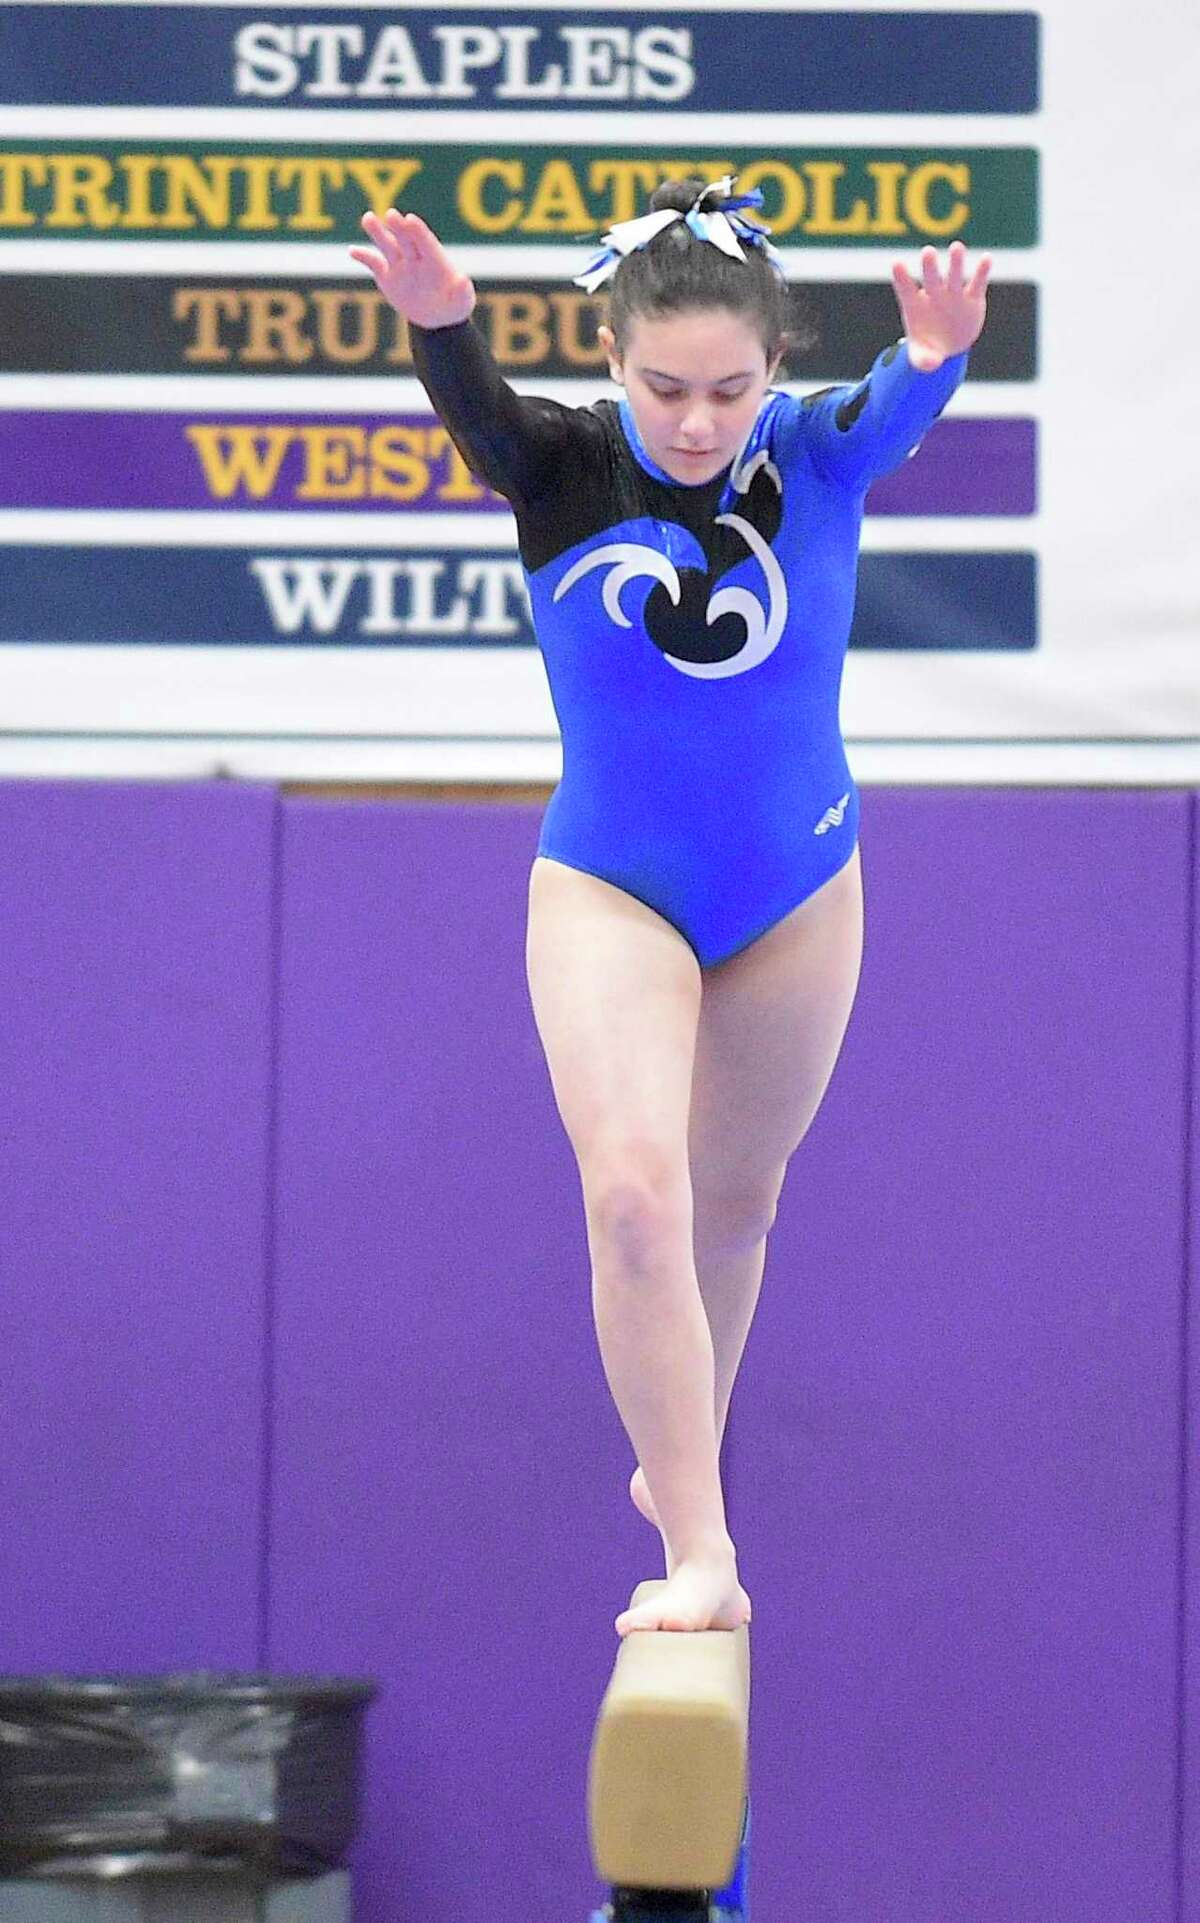 Competitors compete in the Ro Carlucci FCIAC Championships for gymnastics at Westhill High School on Feb. 15, 2020 in Stamford, Connecticut. Fairfield Ludlowe won the FCIAC gymnastics championship and the Falcons' Mancini taking top individual honors in All Around.